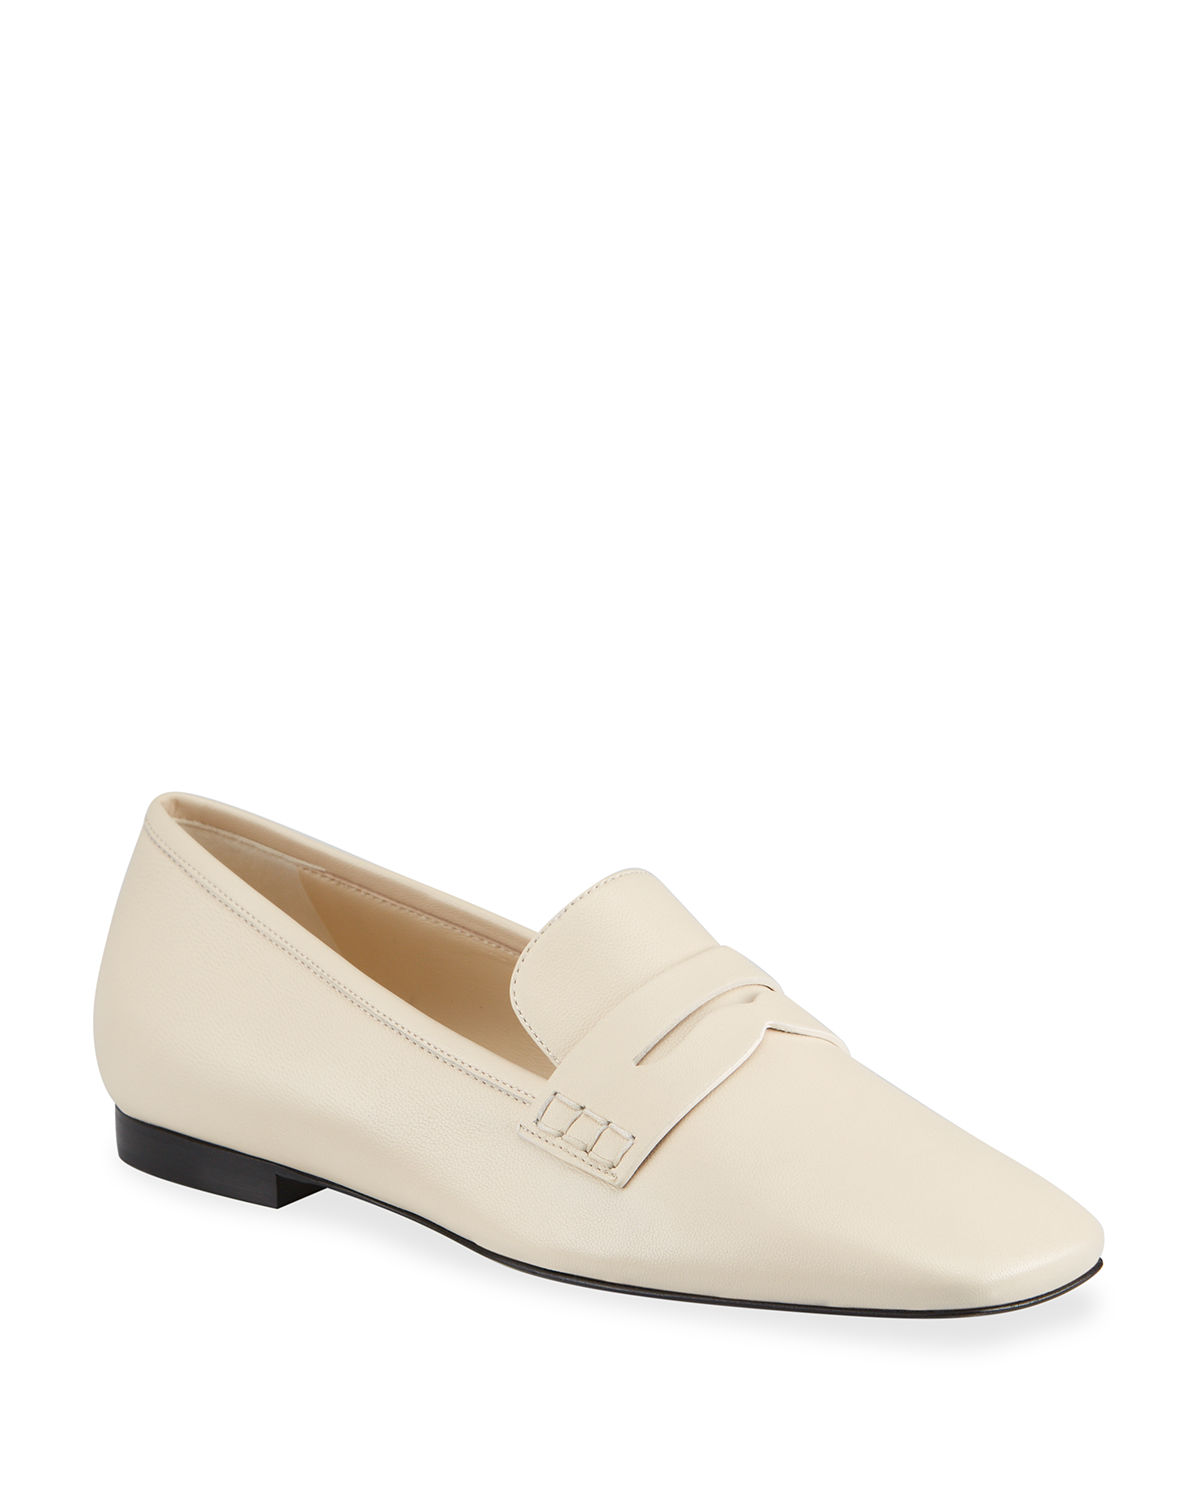 Carlisle Suede Penny Loafer